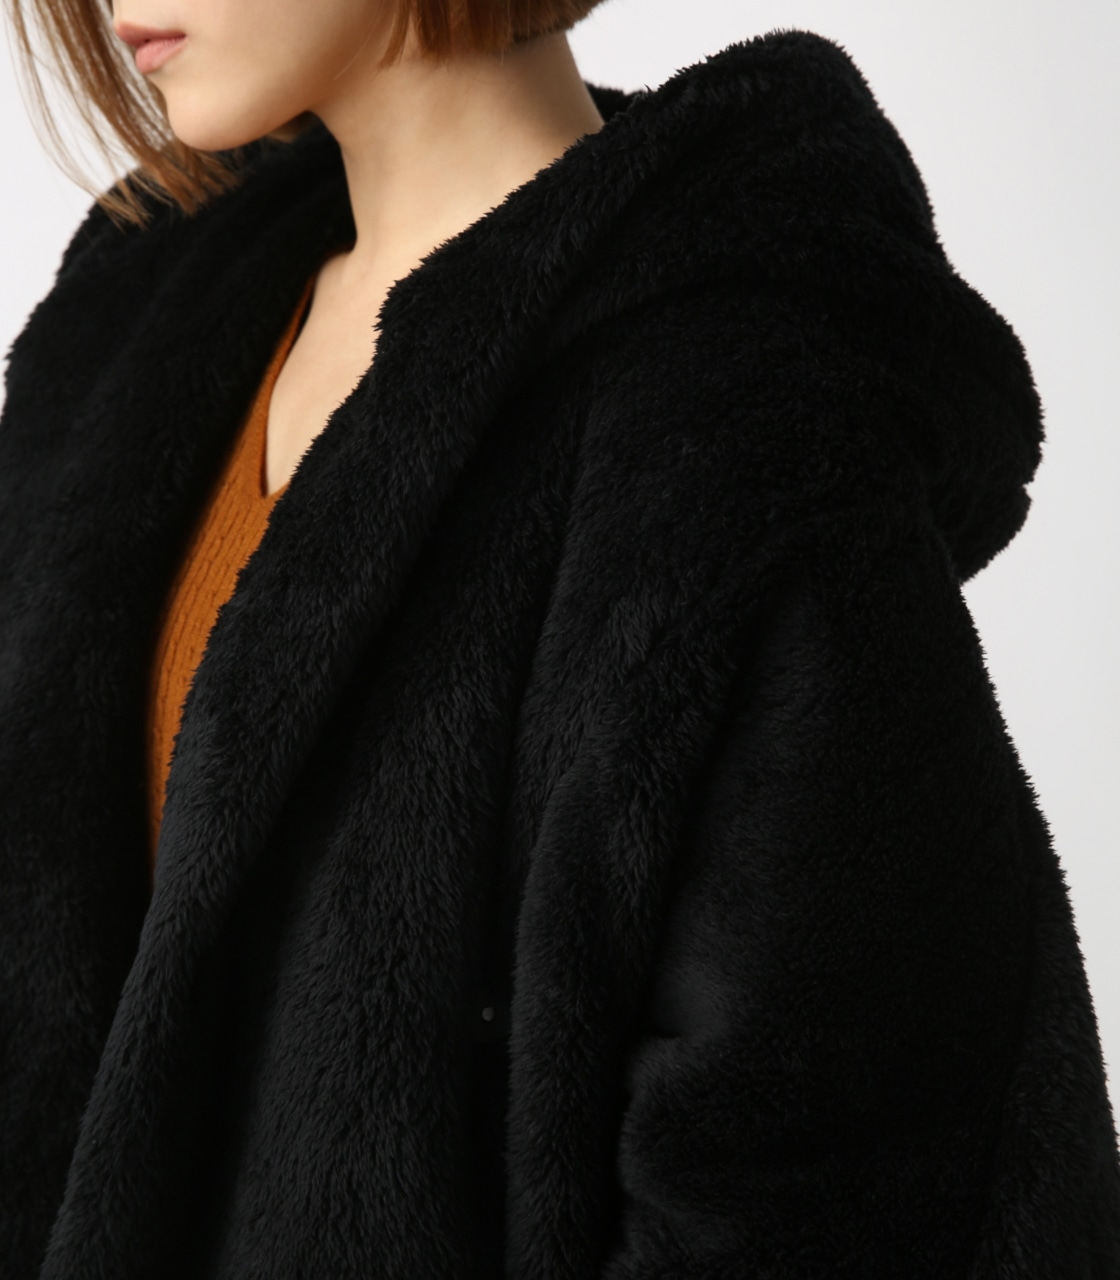 【AZUL BY MOUSSY】ボアショールカラーロングコート【MOOK44掲載 99031】 詳細画像 BLK 8